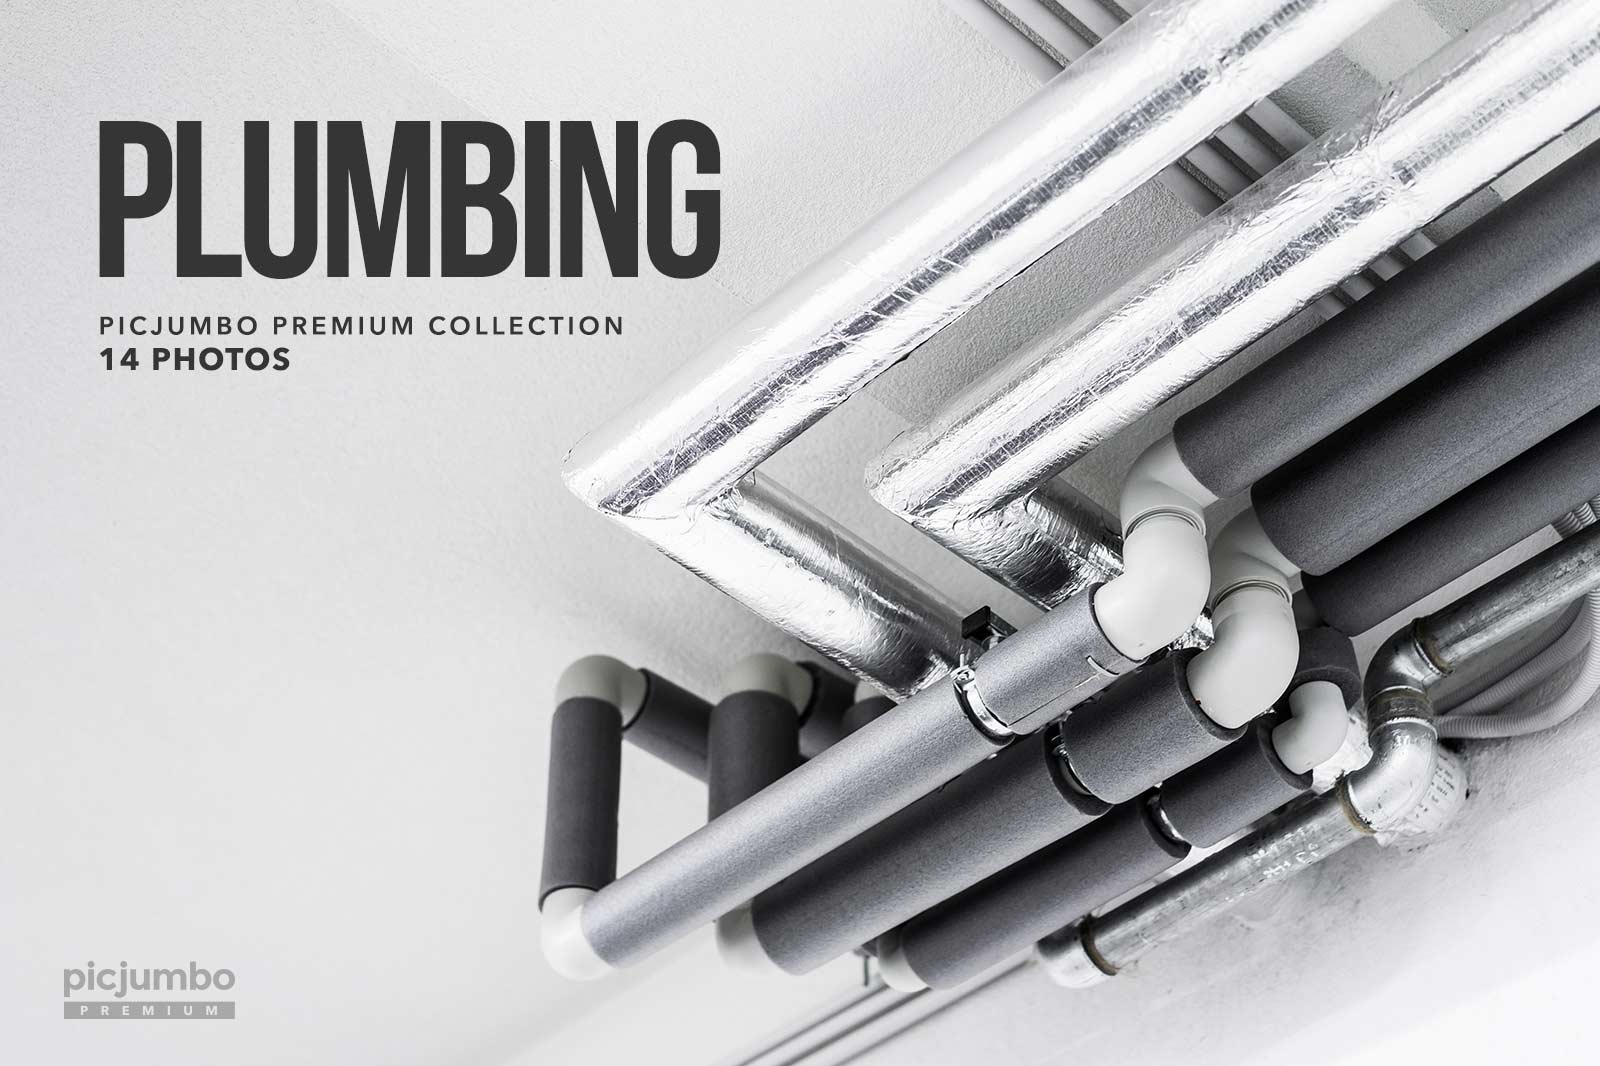 plumbing-photo-collection-picjumbo-premium.jpg